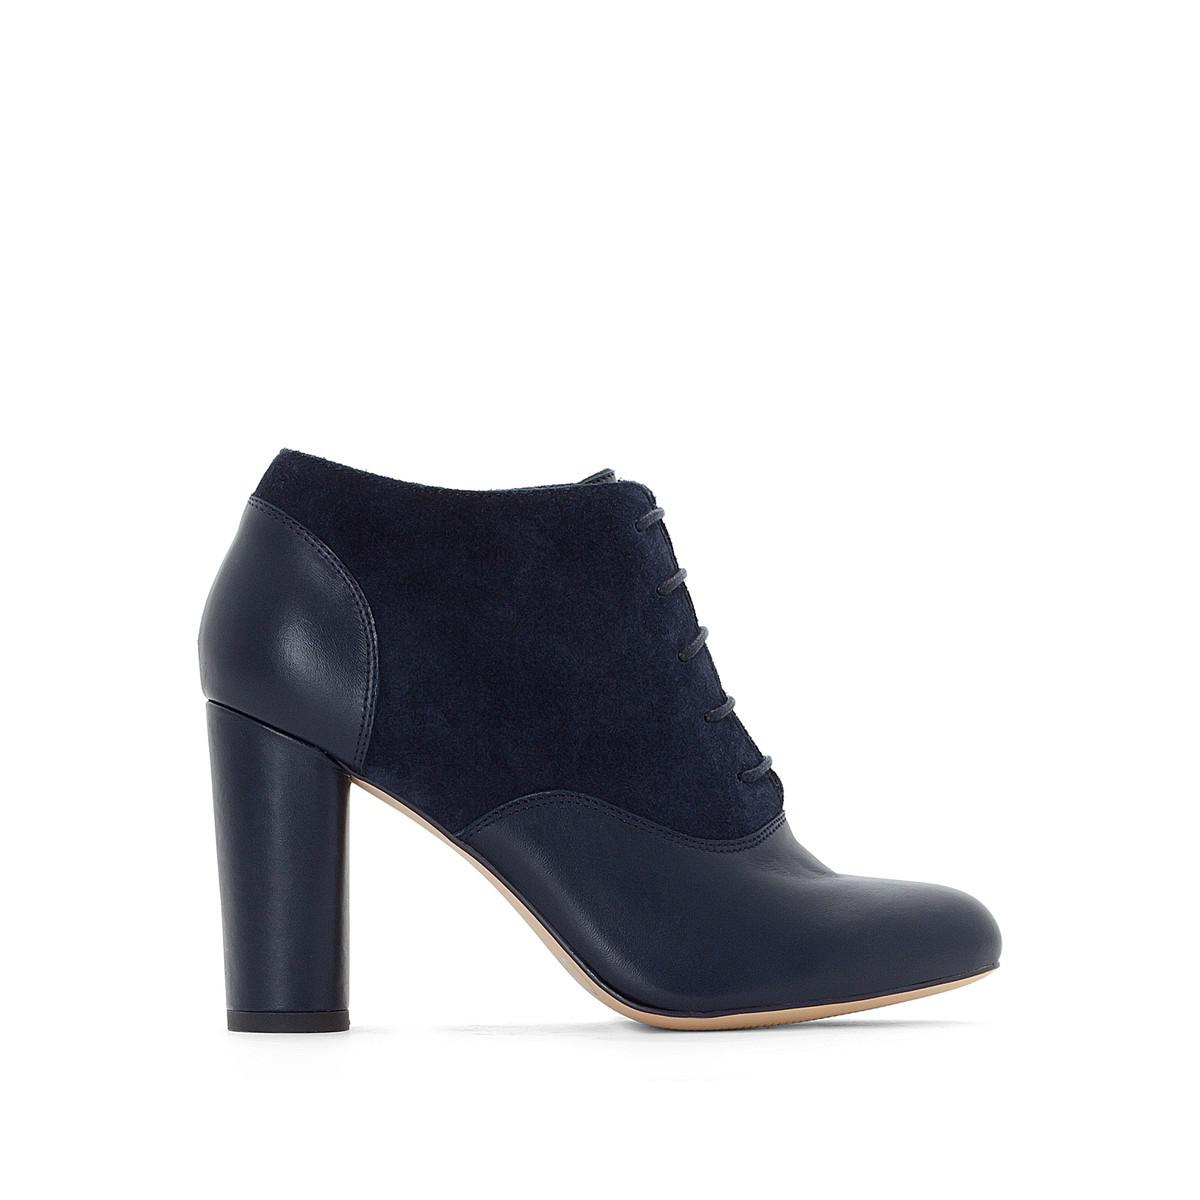 La Redoute Collections High-Heel Leather Boots with Ankle Strap outlet exclusive pKa5y4i6